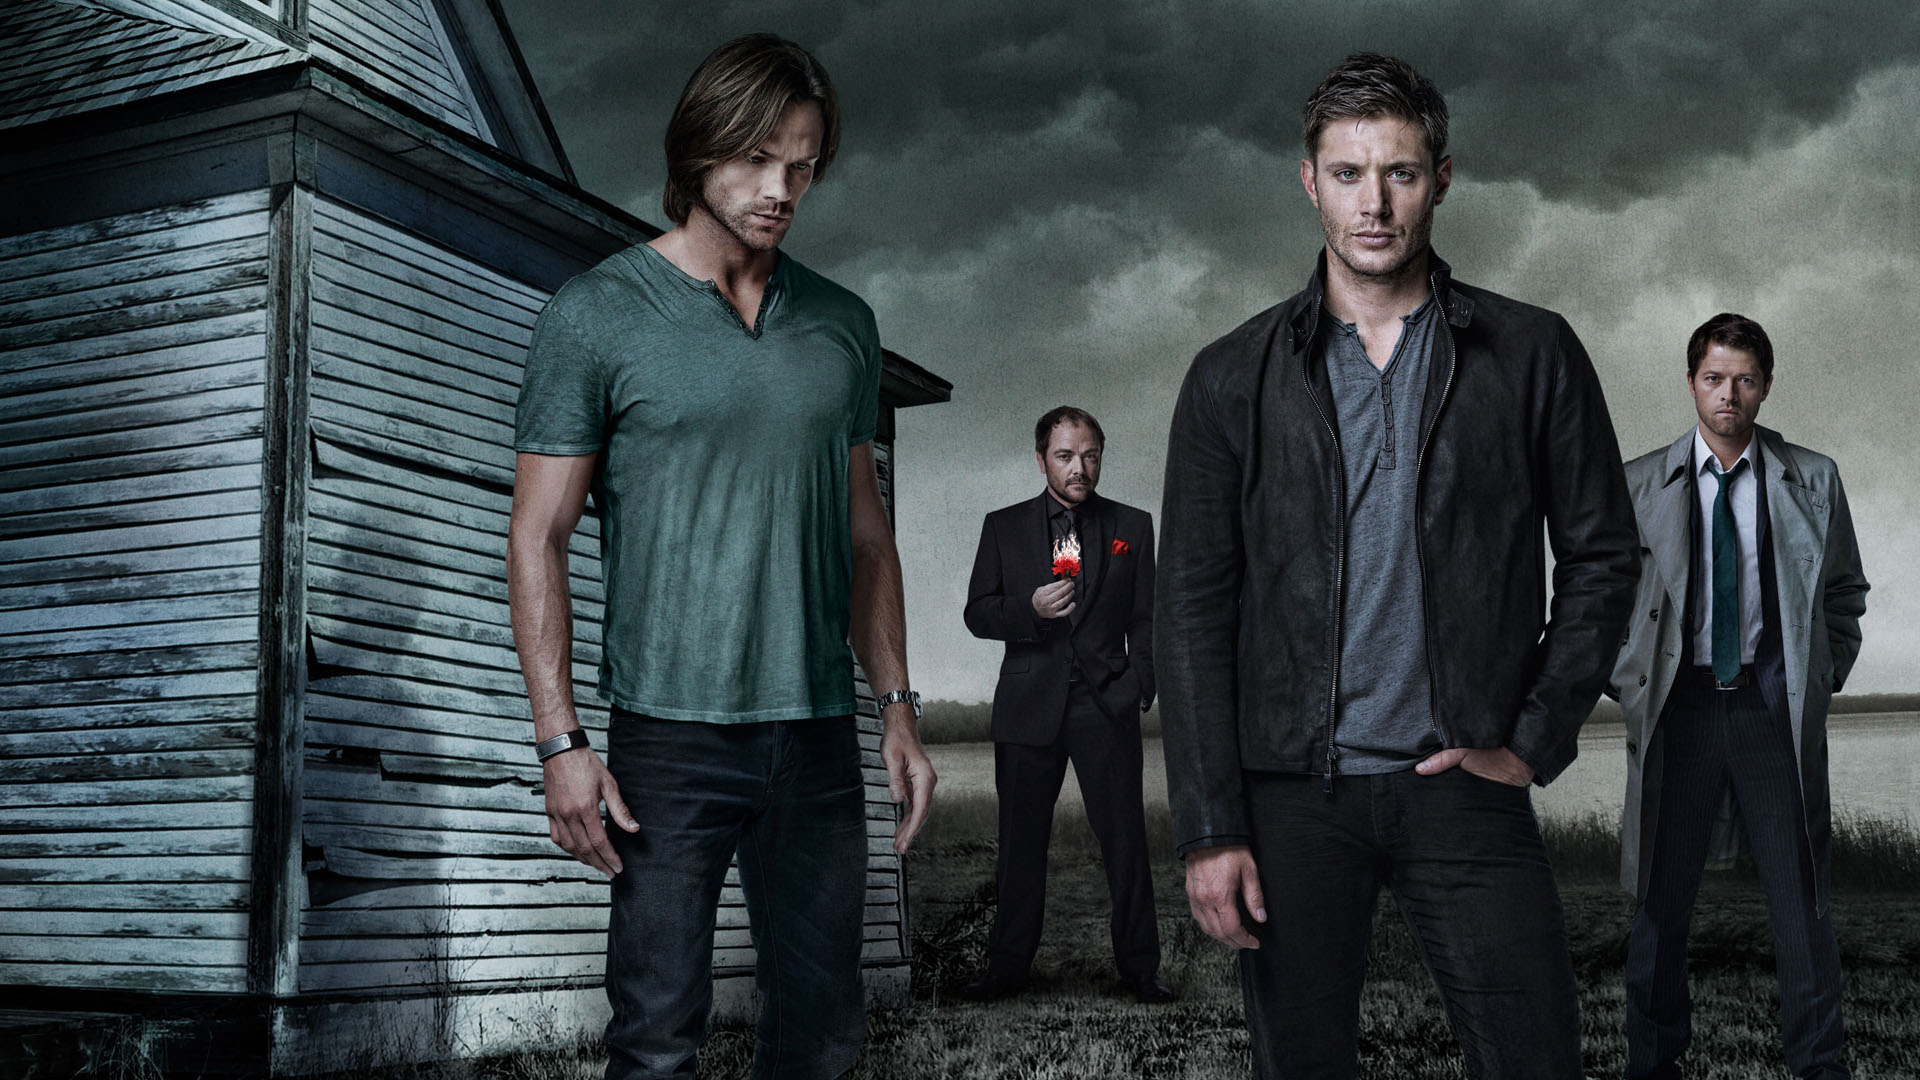 supernatural wallpapers desktop - HD Desktop Wallpapers ...